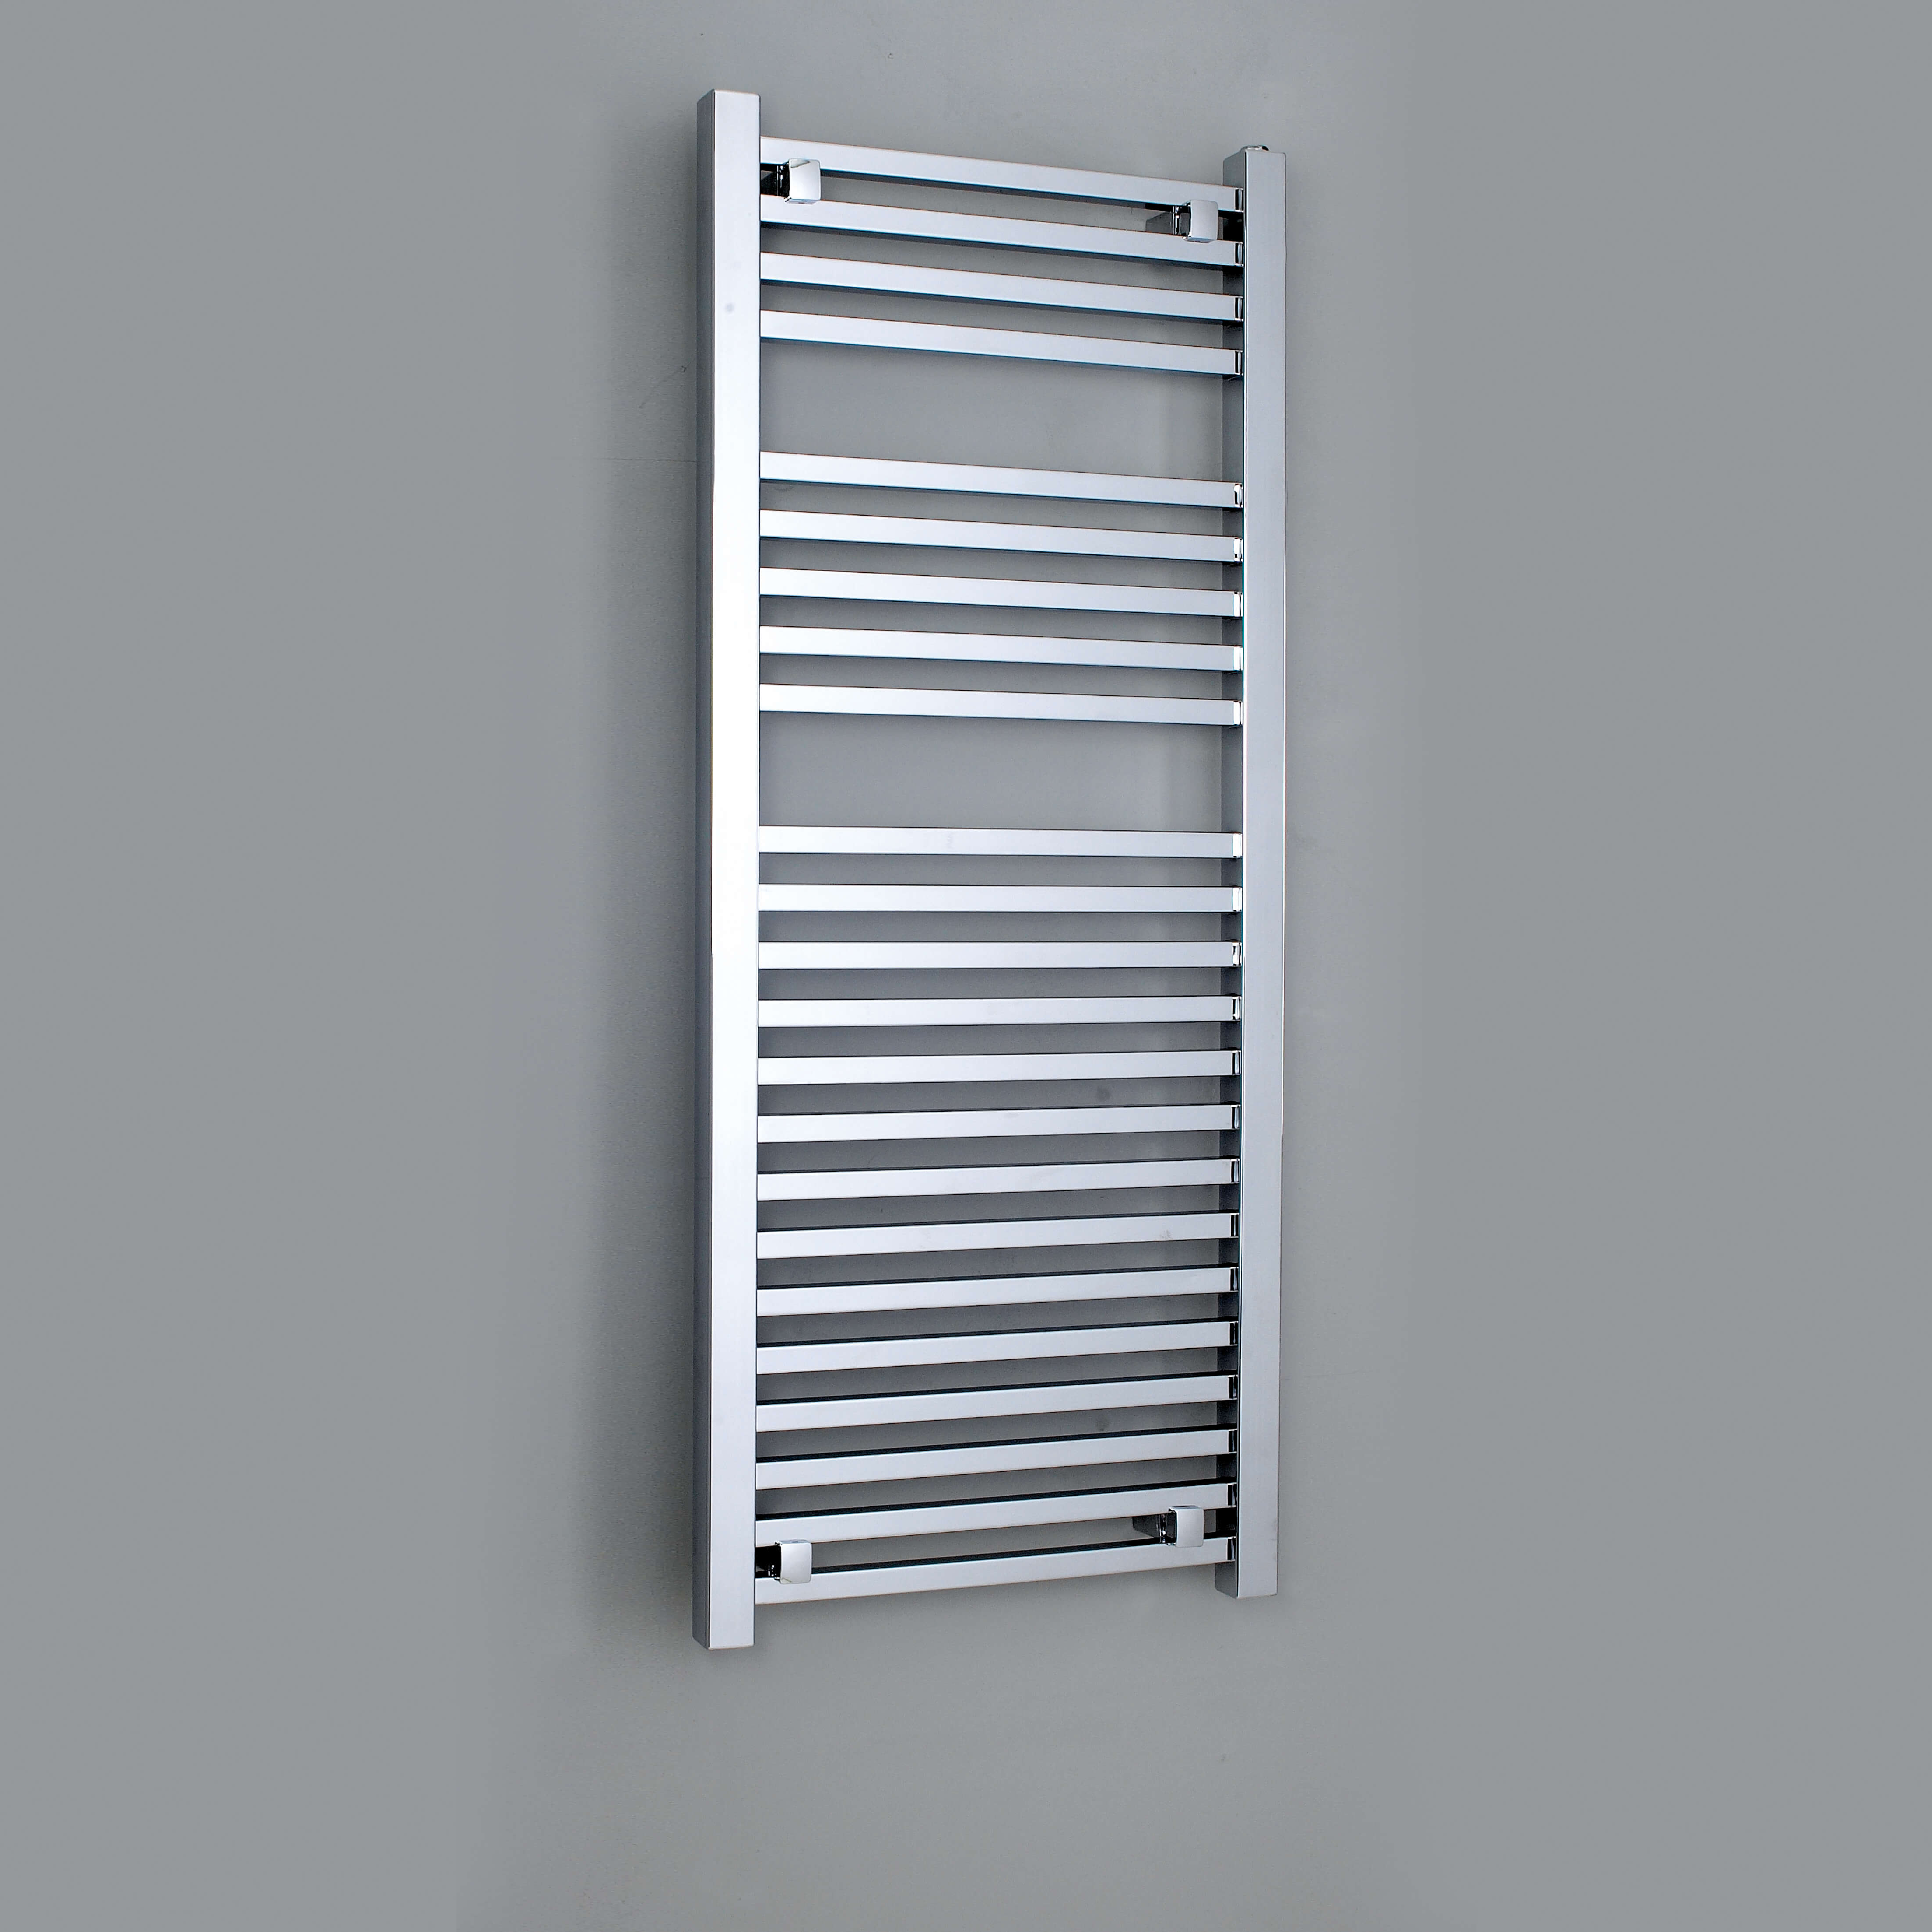 Sophia Designer Towel Rail Wall Mounted Towel Warmer 500 Width ...